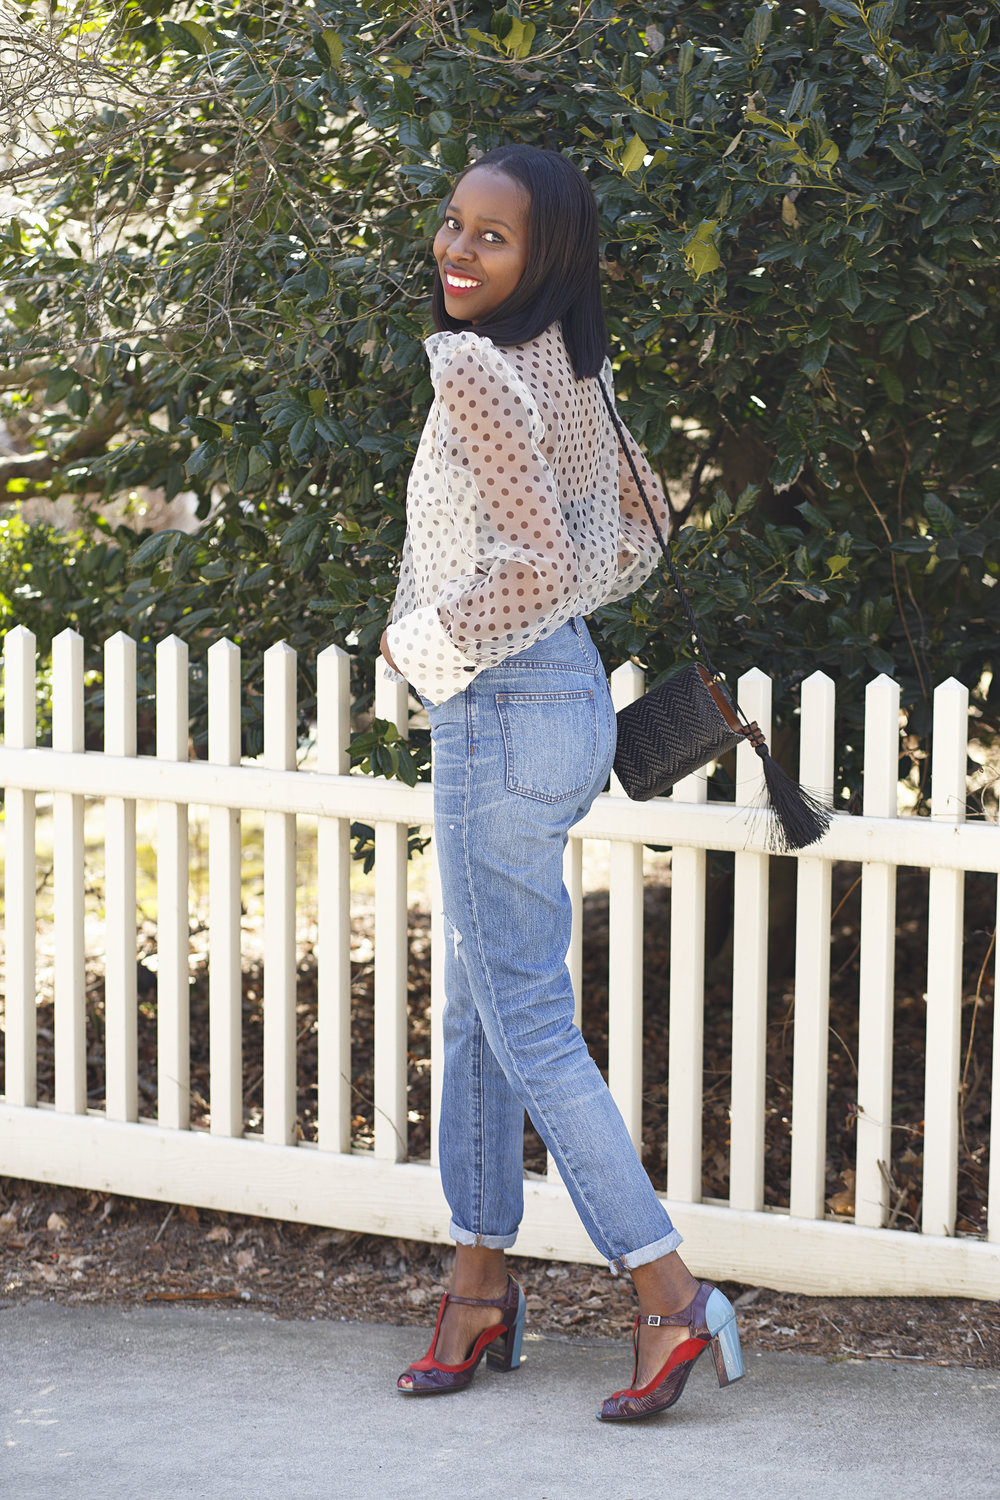 Zara polka dot blouse, madewell jeans and colour block shoes